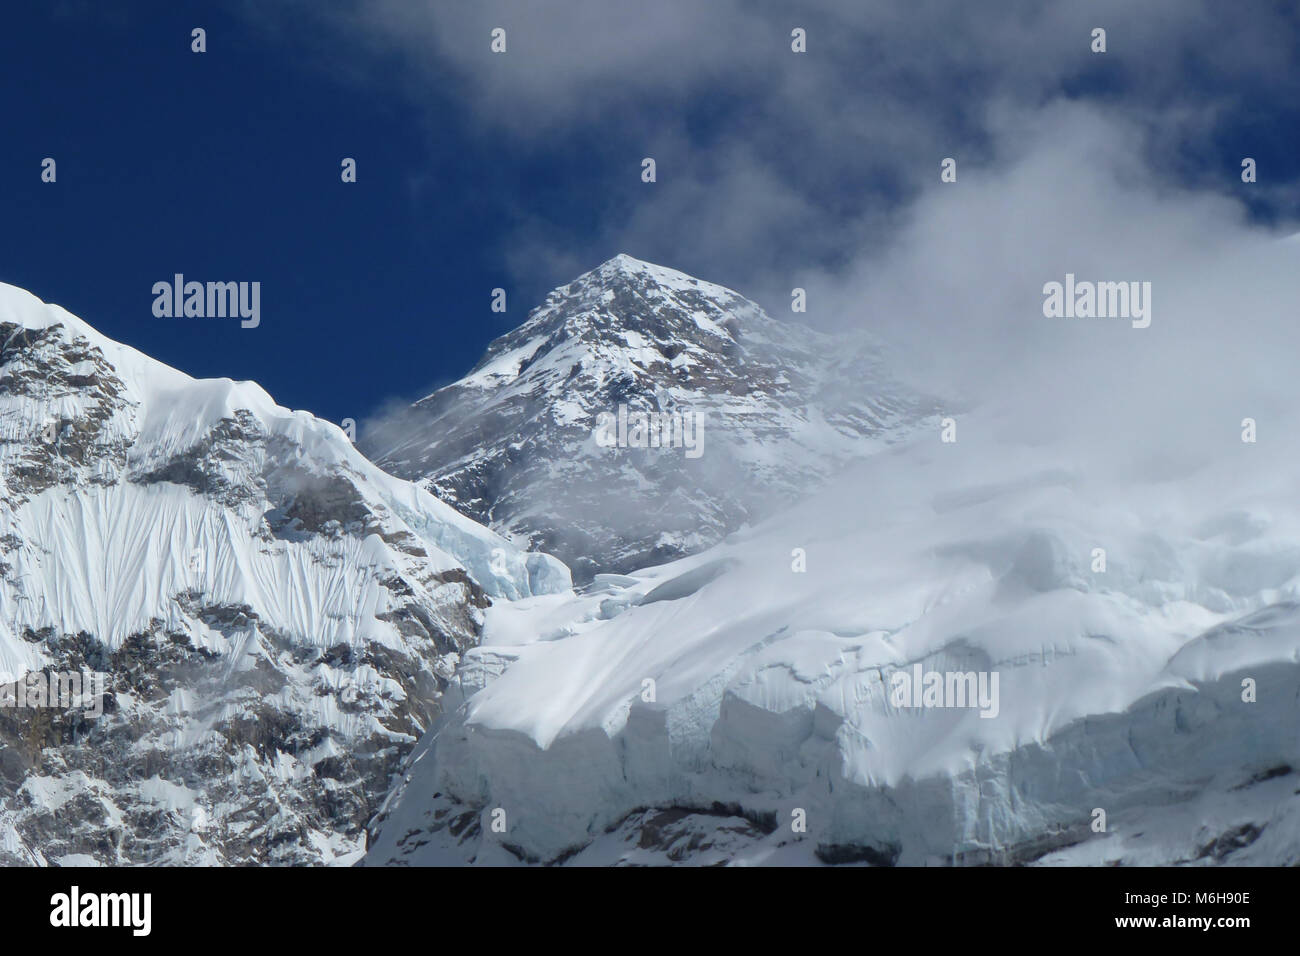 View of Mount Everest summit (8848 meters), seen from the Everest Base Camp trek, Nepal Stock Photo